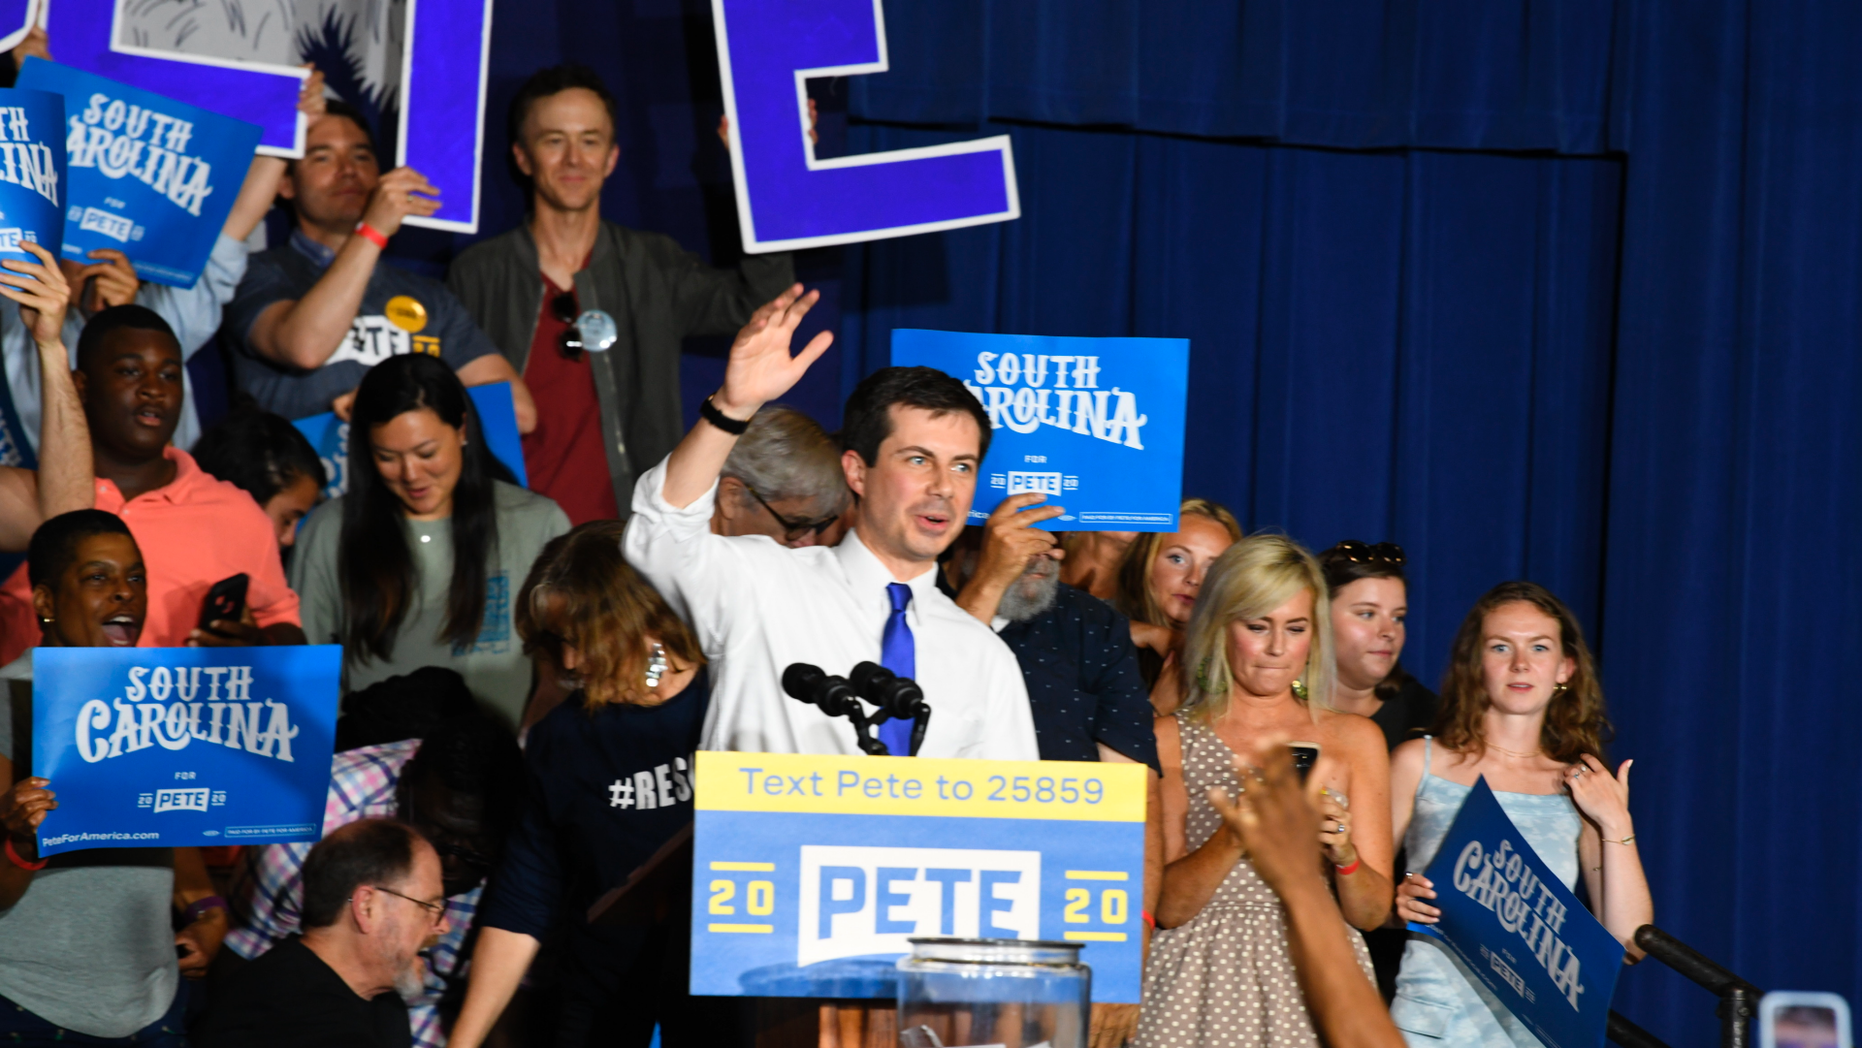 Westlake Legal Group ContentBroker_contentid-2a5ce98bfa3b43749f9ddb7ecce94be0 Buttigieg acknowledges work needed to appeal to black voters MEG KINNARD fox-news/us/religion fnc/us fnc c7ac7b47-87b1-51b2-97e8-69fe48e7a710 Associated Press article